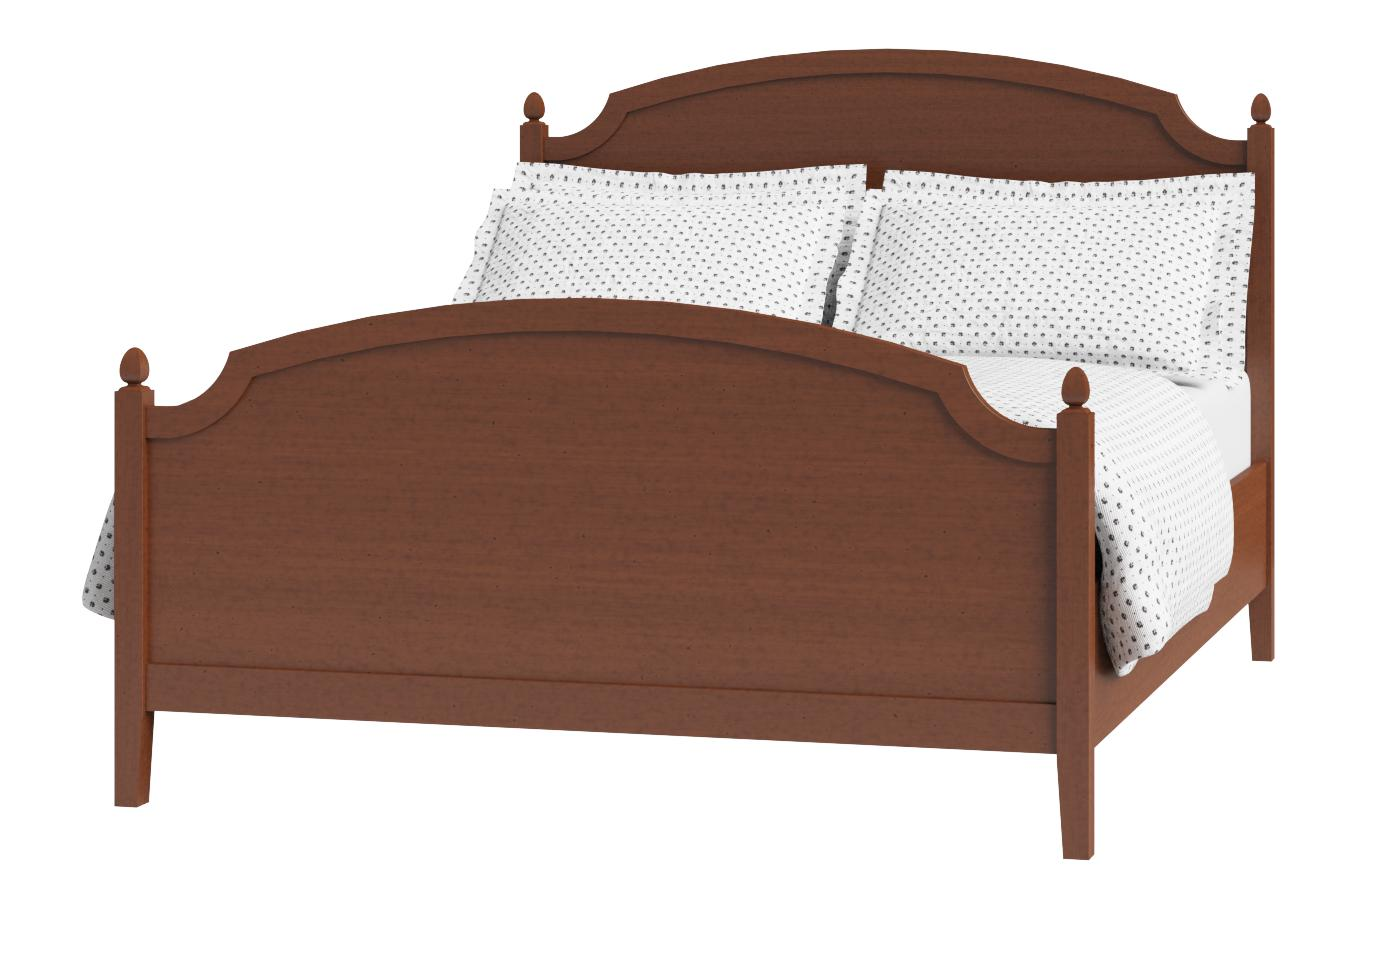 Cutout of Kipling wood bed in a dark cherry finish